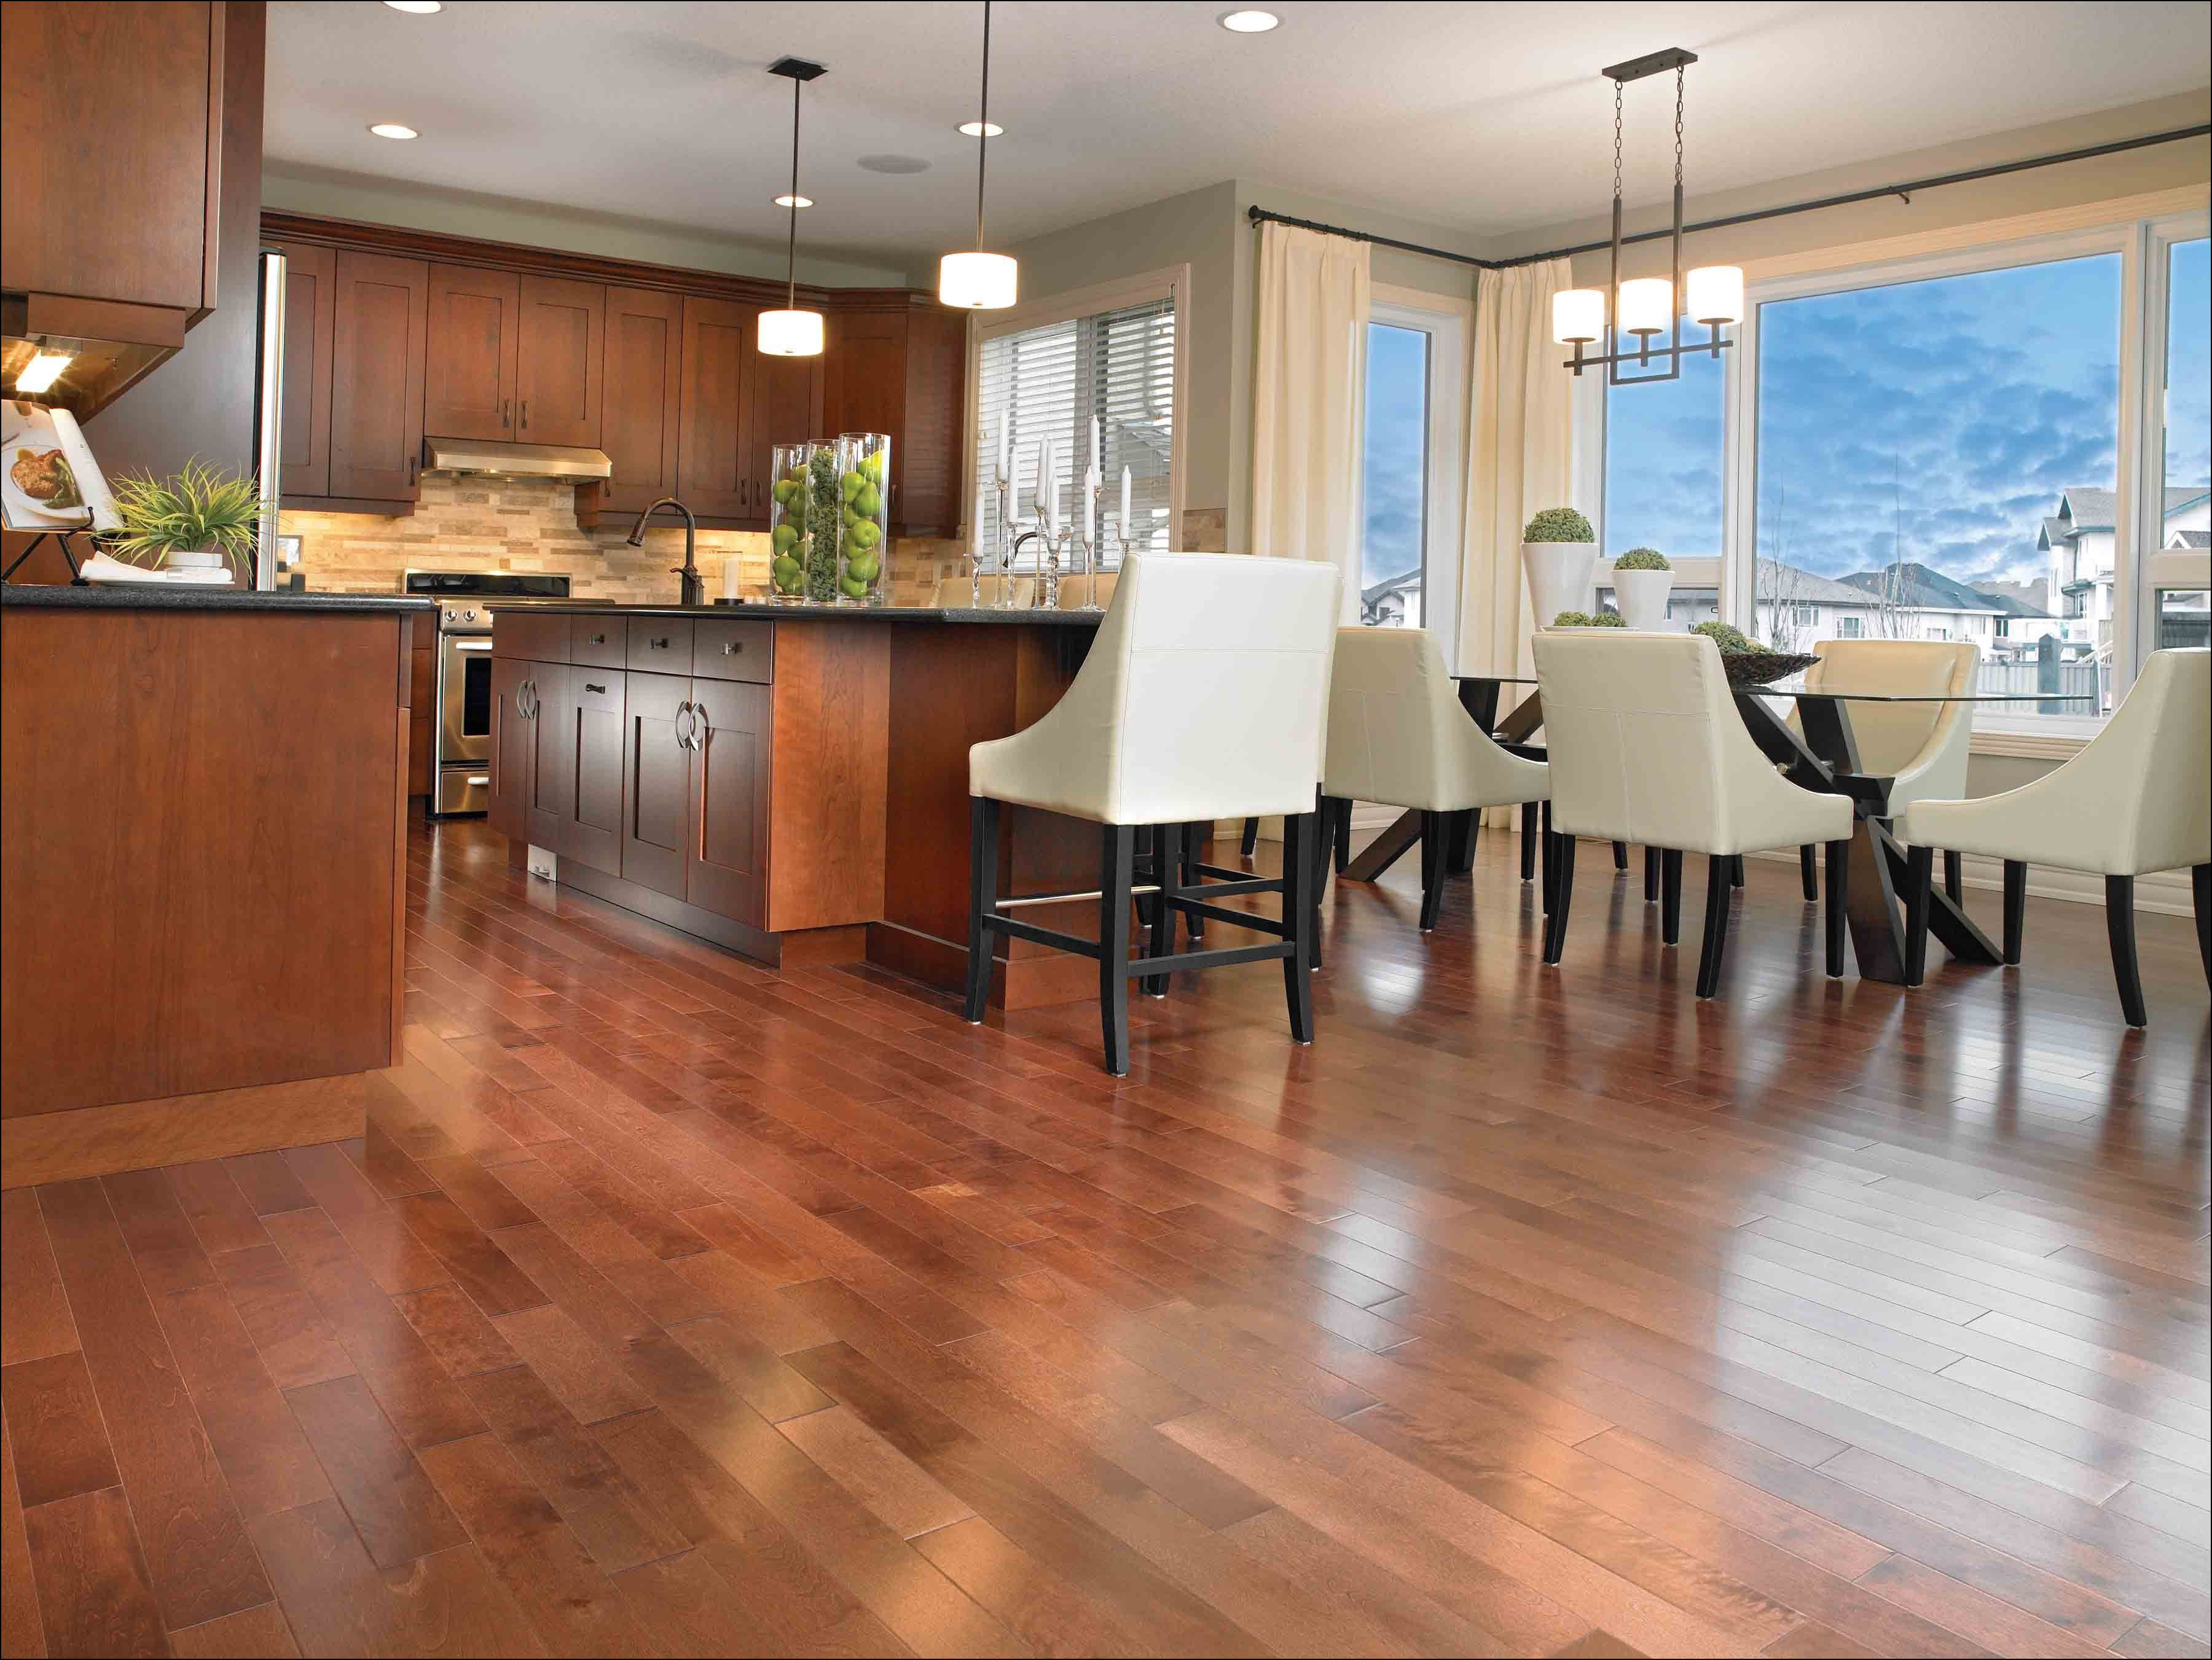 hardwood flooring contractors nj of hardwood flooring suppliers france flooring ideas with hardwood flooring installation san diego images 54 best exotic flooring images on pinterest of hardwood flooring